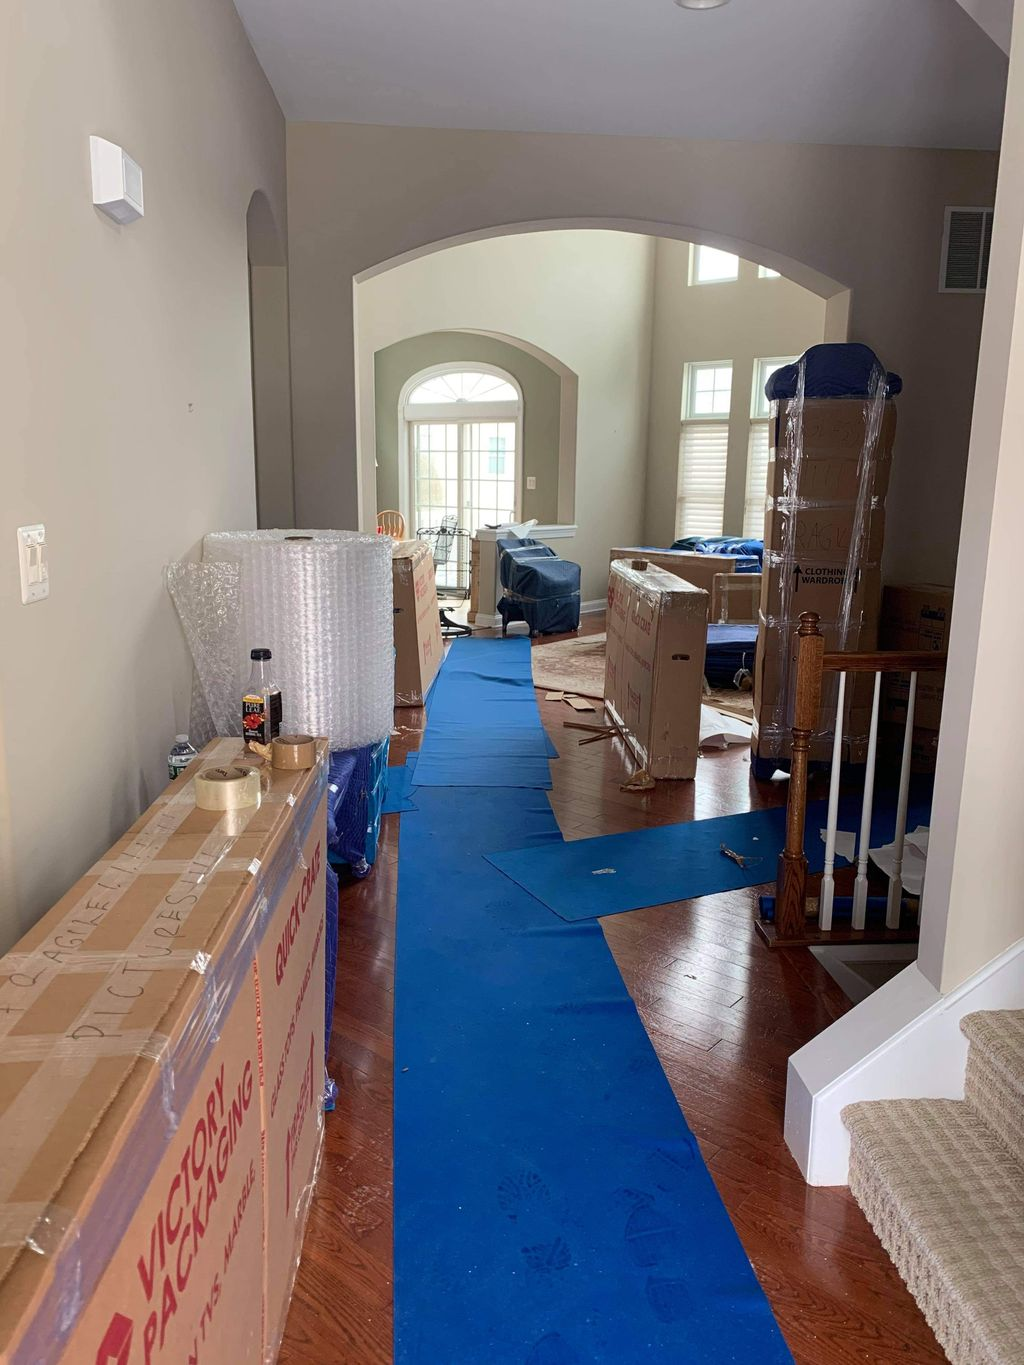 Moving a 4 bedroom home from NJ to PA